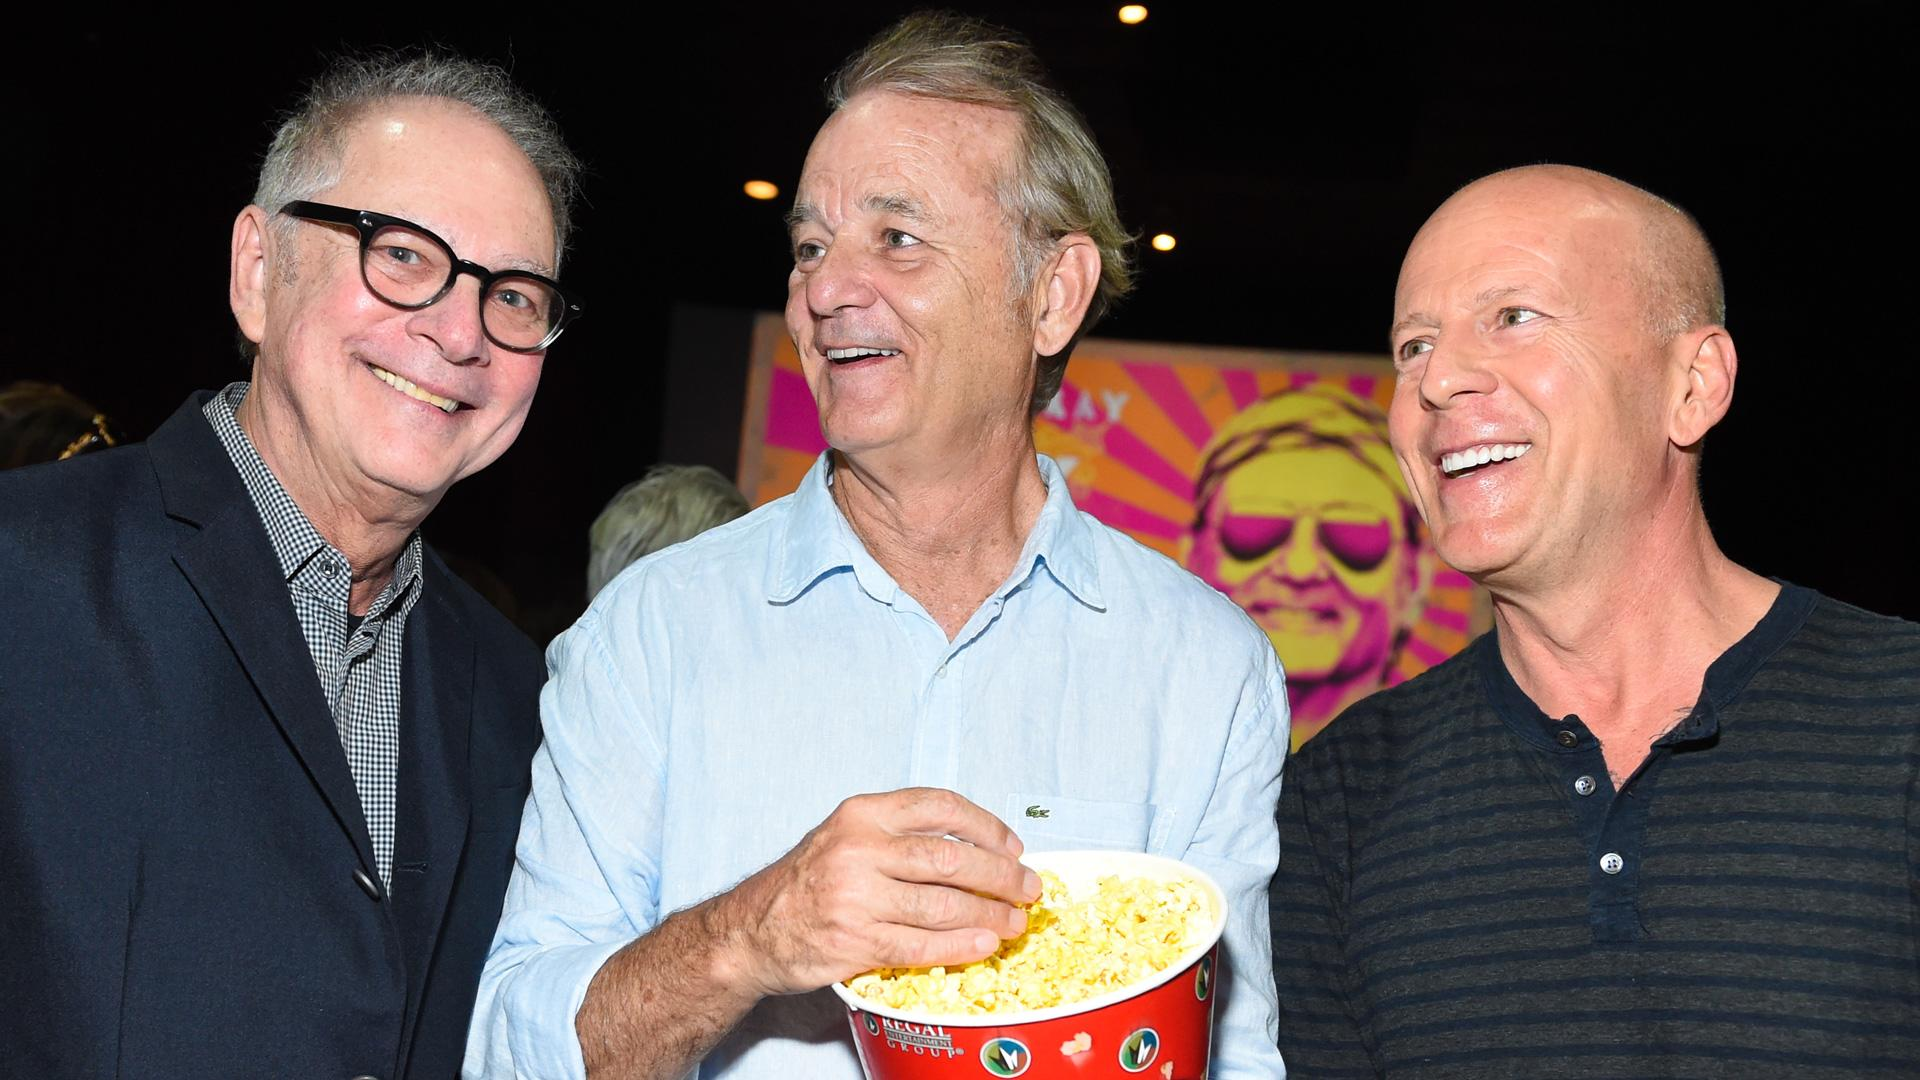 Bill Clinton, McCartney and Springsteen Attend Bill Murray's 'Rock the Kasbah' Screening